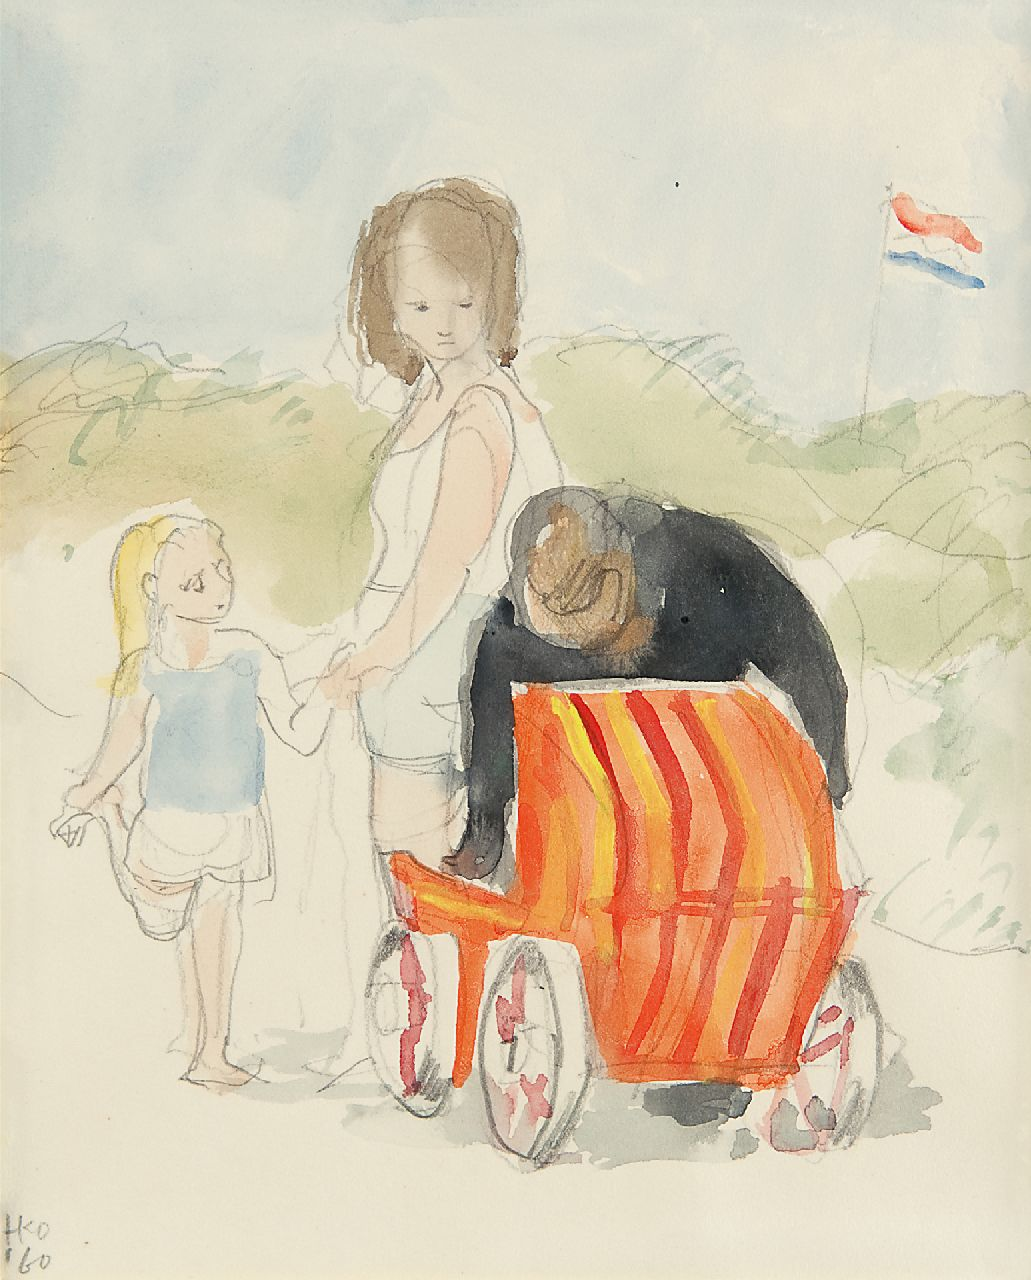 Kamerlingh Onnes H.H.  | 'Harm' Henrick Kamerlingh Onnes | Watercolours and drawings offered for sale | Family in the dunes on Terschelling, pencil and watercolour on paper 18.8 x 16.2 cm, signed l.l. with monogram and painted '60